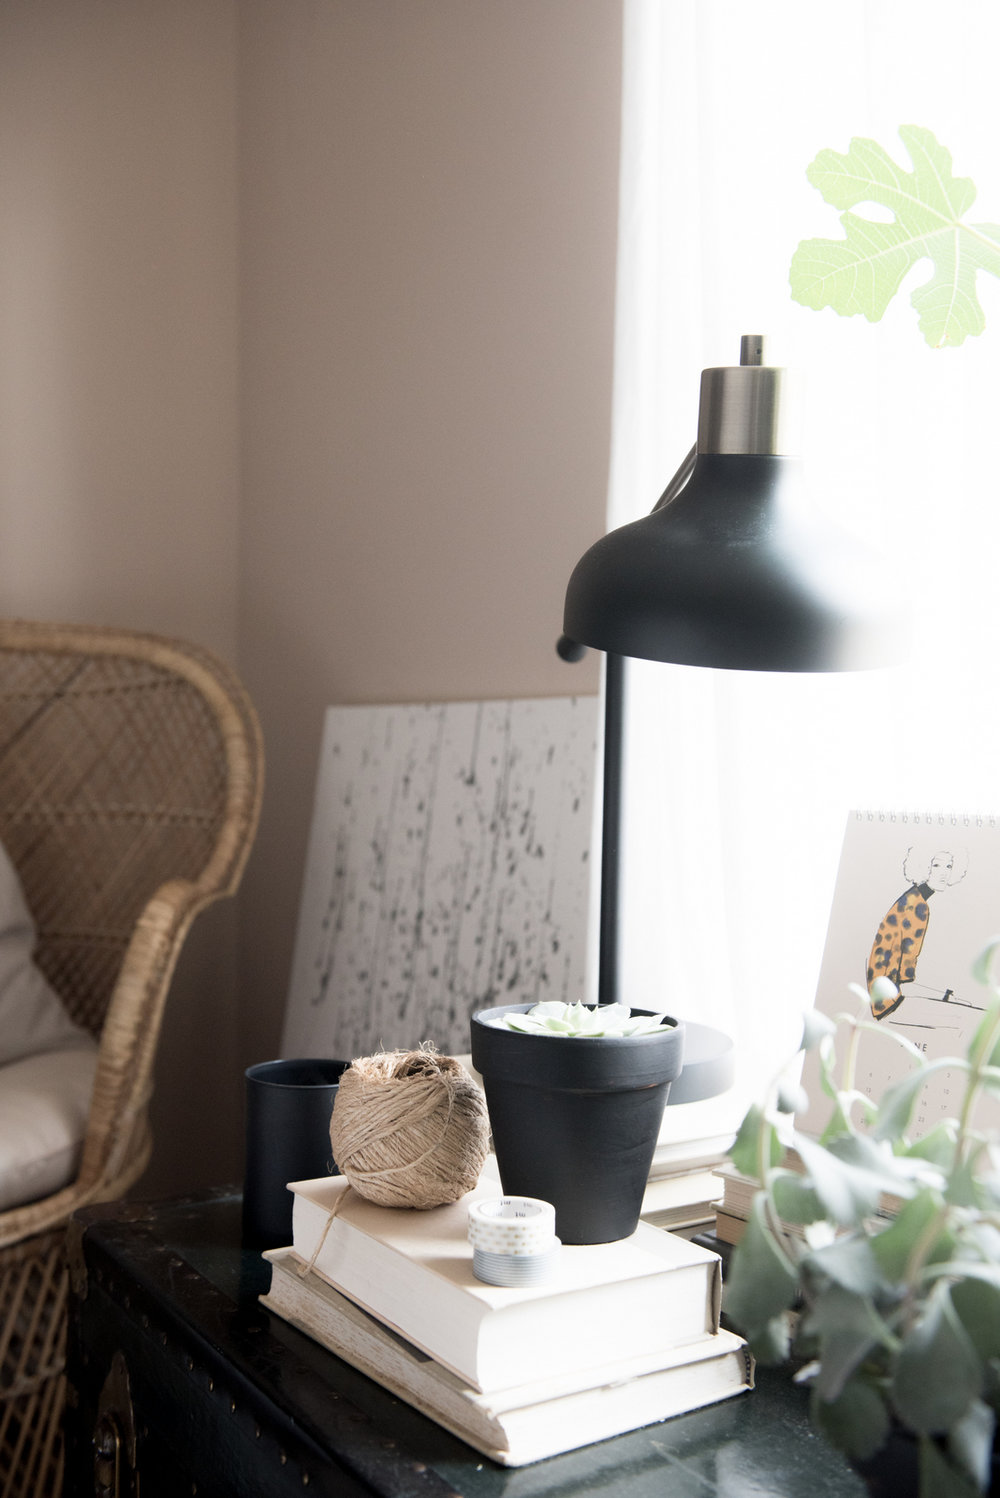 A great lamp from Target and a vintage chair from the basement keep the budget on track. -